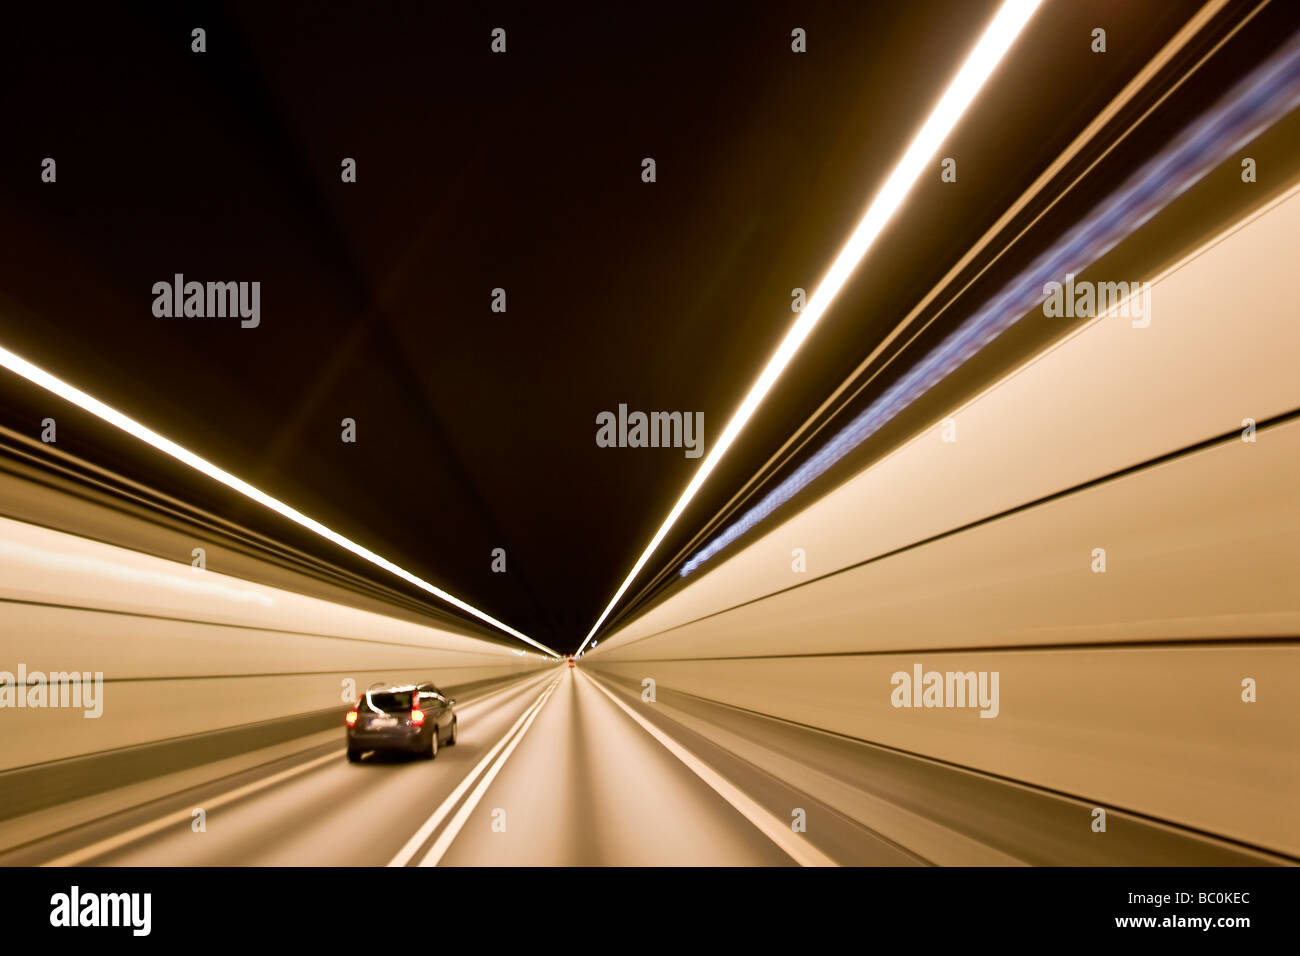 Inside the tunnel at the Oresund Bridge between Denmark and Sweden - Stock Image